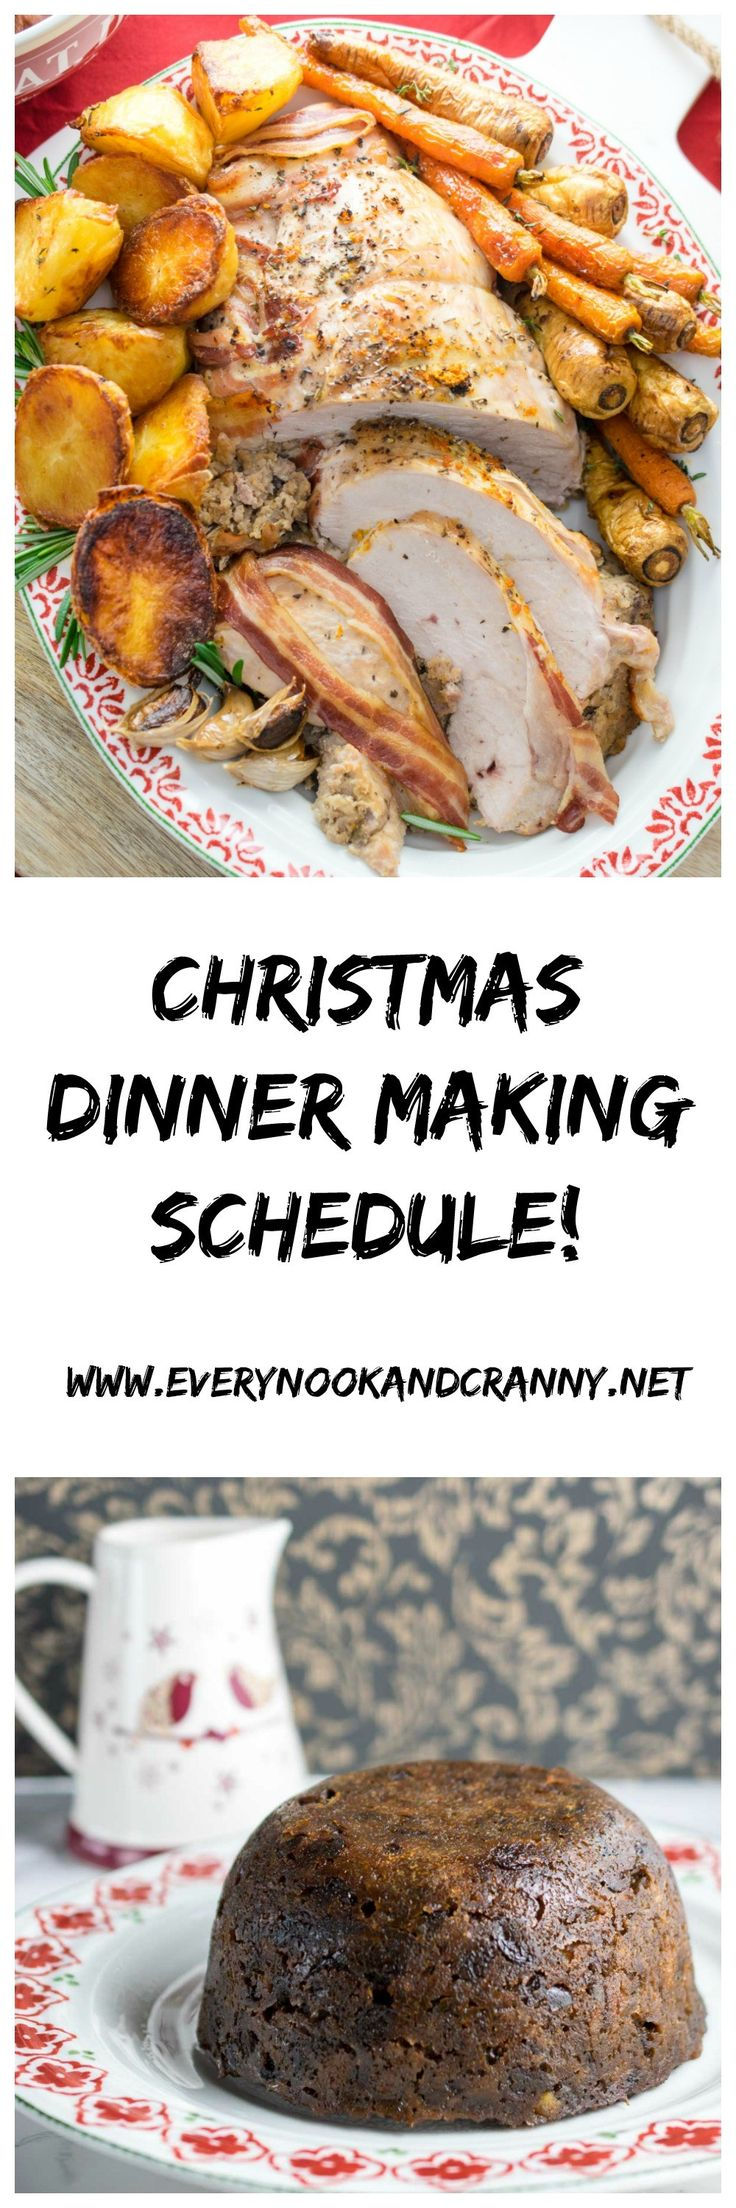 As the final part in my Christmas Dinner Making series, I thought I'd run you through how to get everything on the table at the same time with the least possible stress possible. The principles apply if you are feeding just you and your loved one or a crowd - the only difference is how